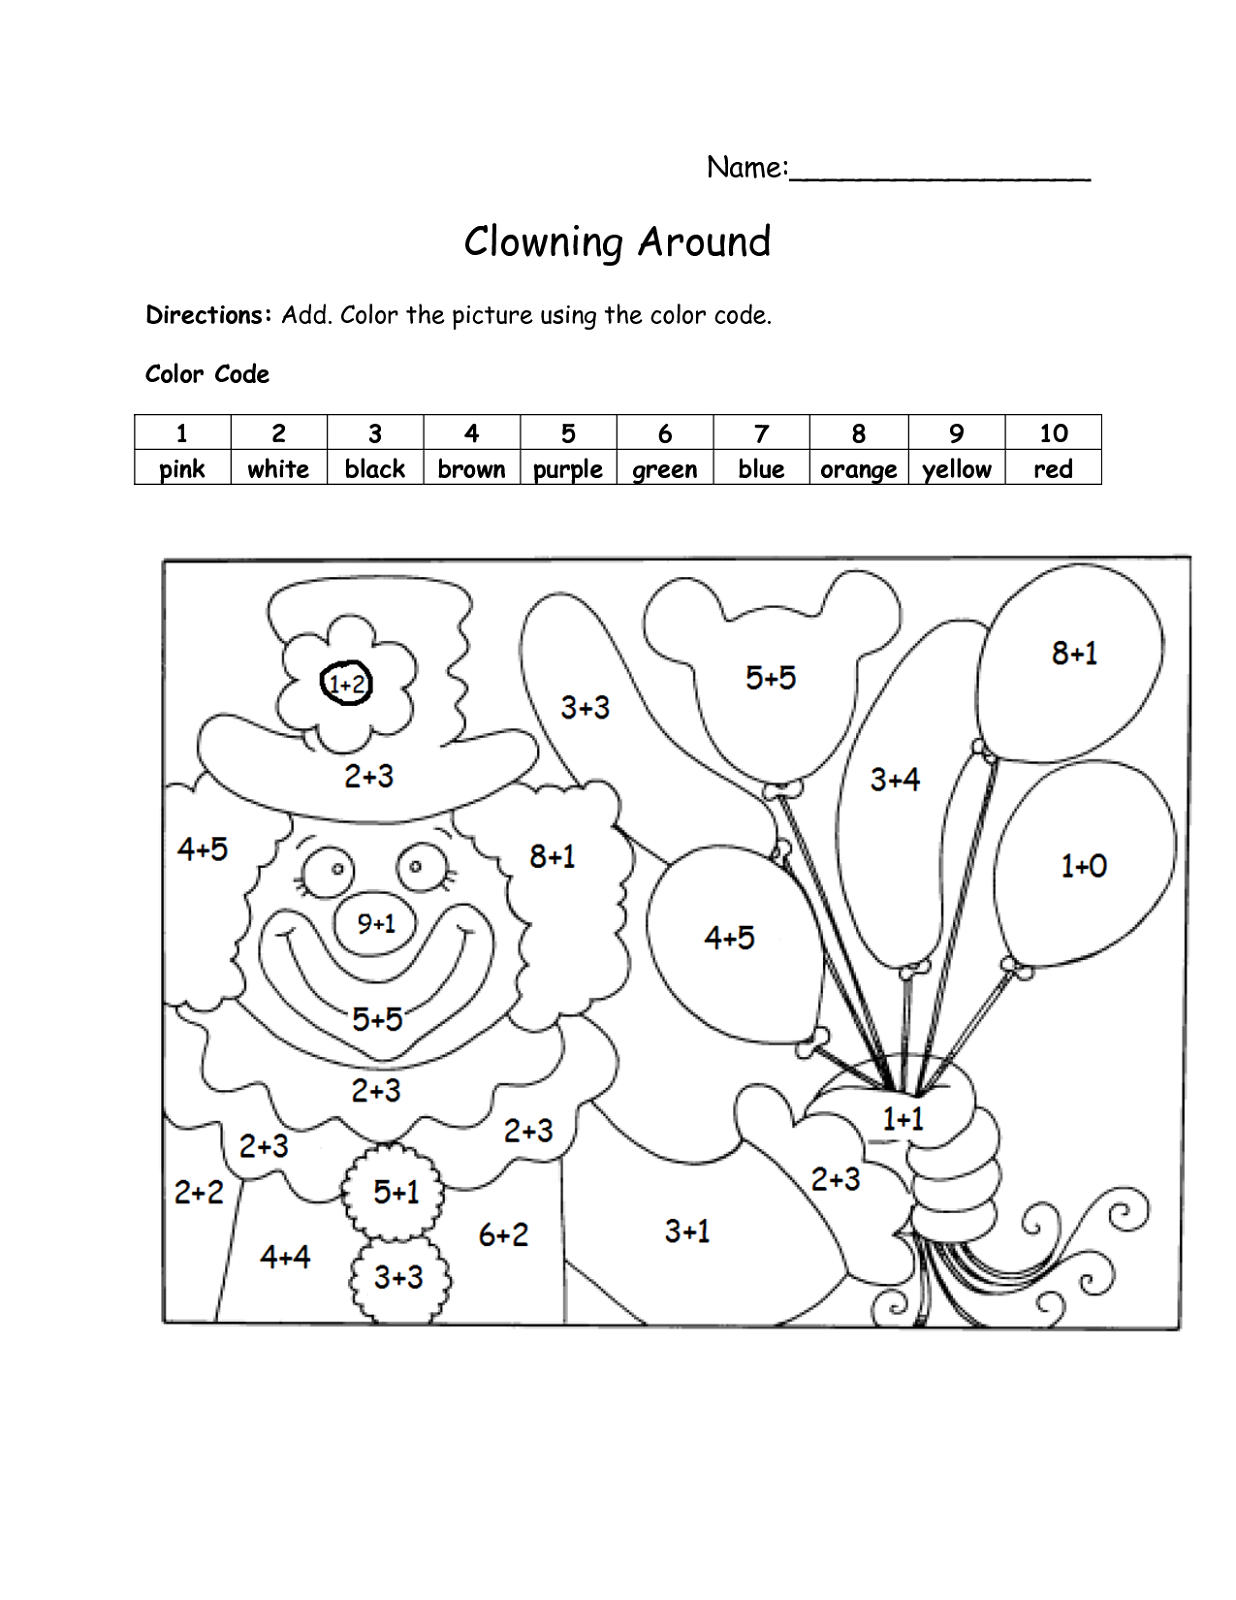 coloring pages, venice winter carnival - Google Search | Lustige ... | 1600x1236